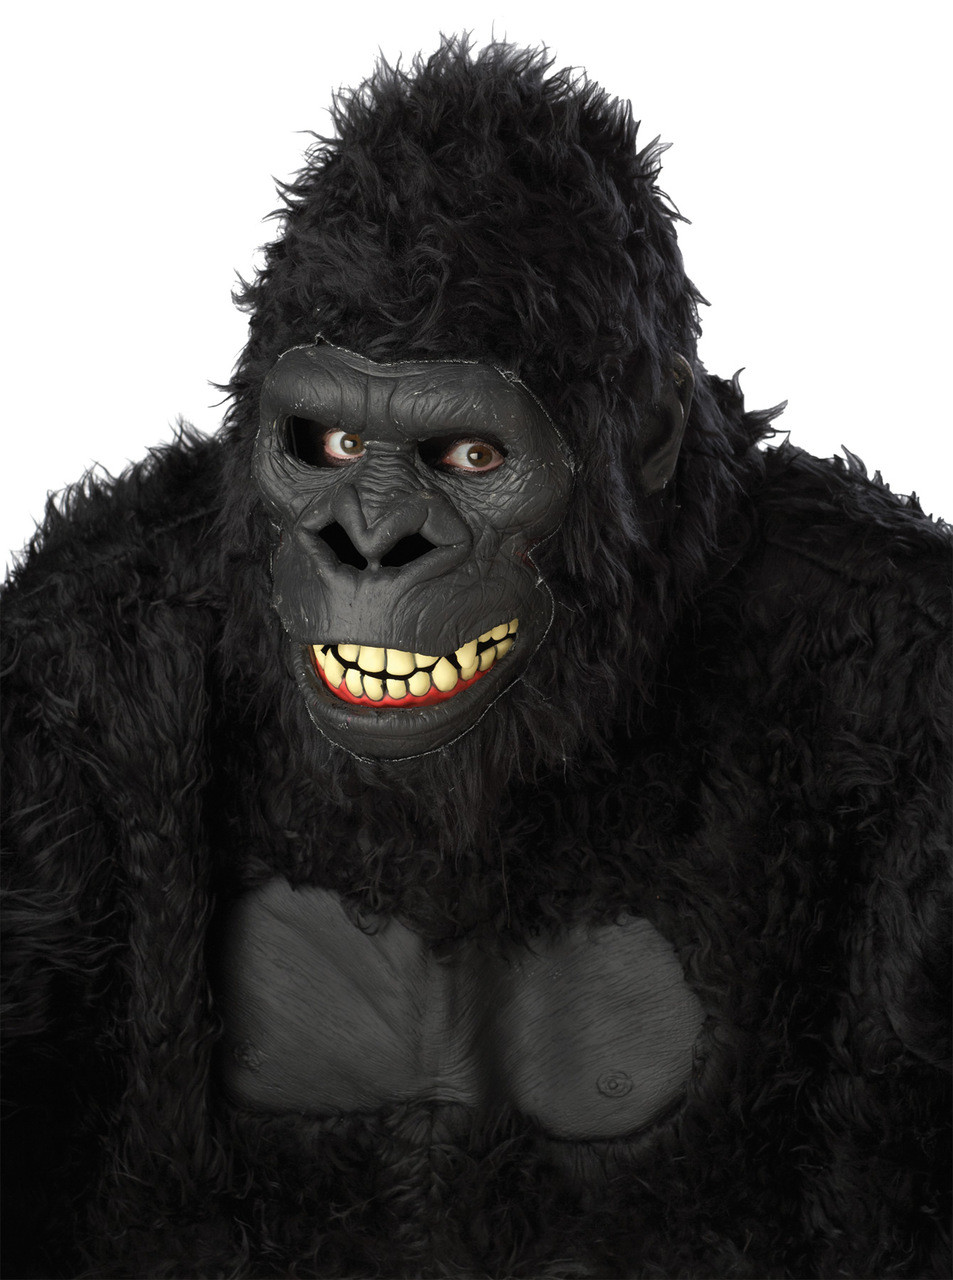 goin ape gorilla ani-motion moving mouth face expressions halloween